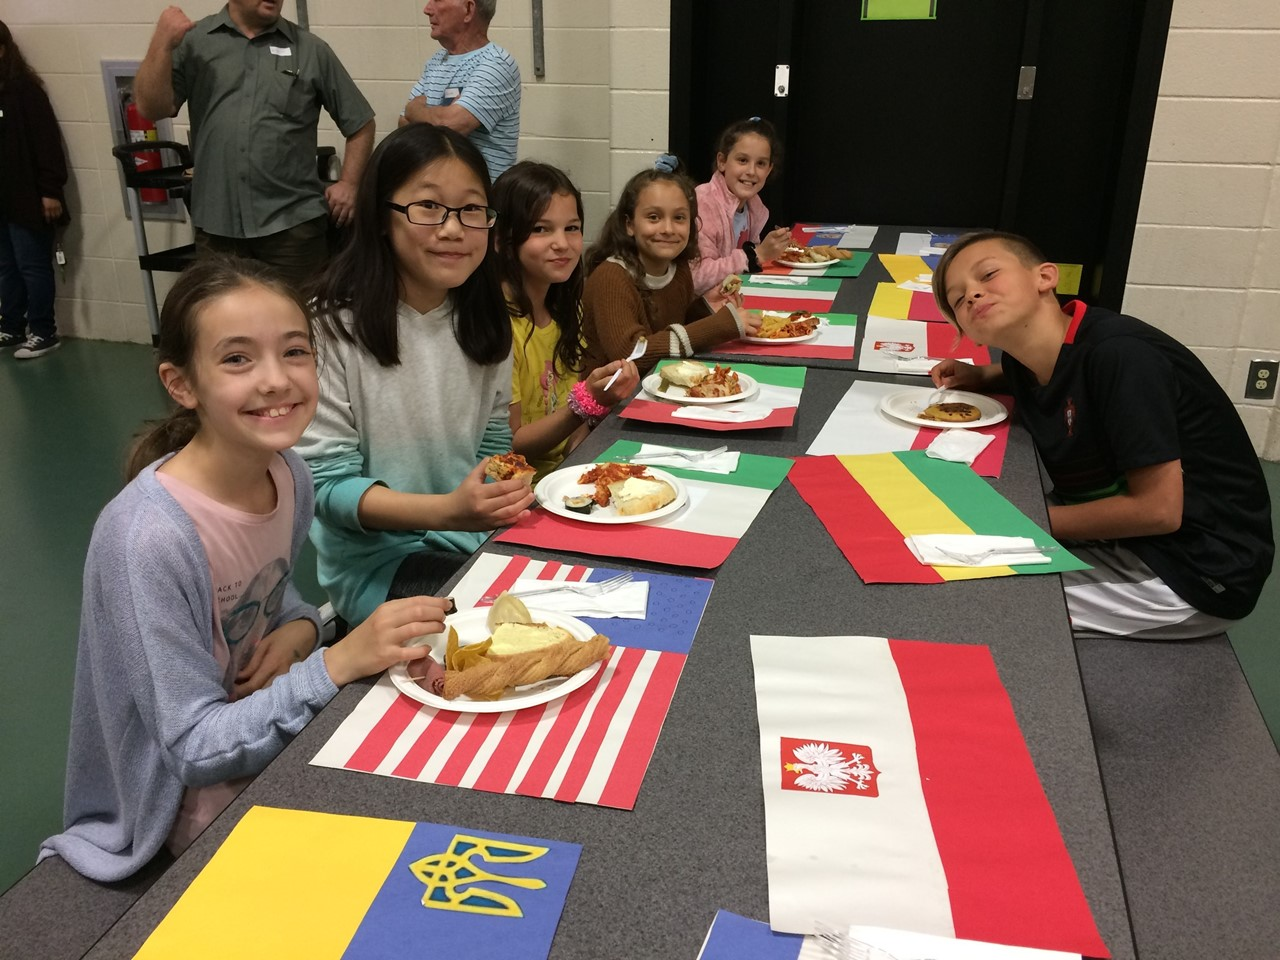 Heritage Day for 5th graders end of project culminating celebration. Students share their autobiographies and about their culture. They bring in food from their different cultures to share with others in 5th grade.  In this picture, students are sitting at a lunch table eating with placemats that look like flags from different countries.